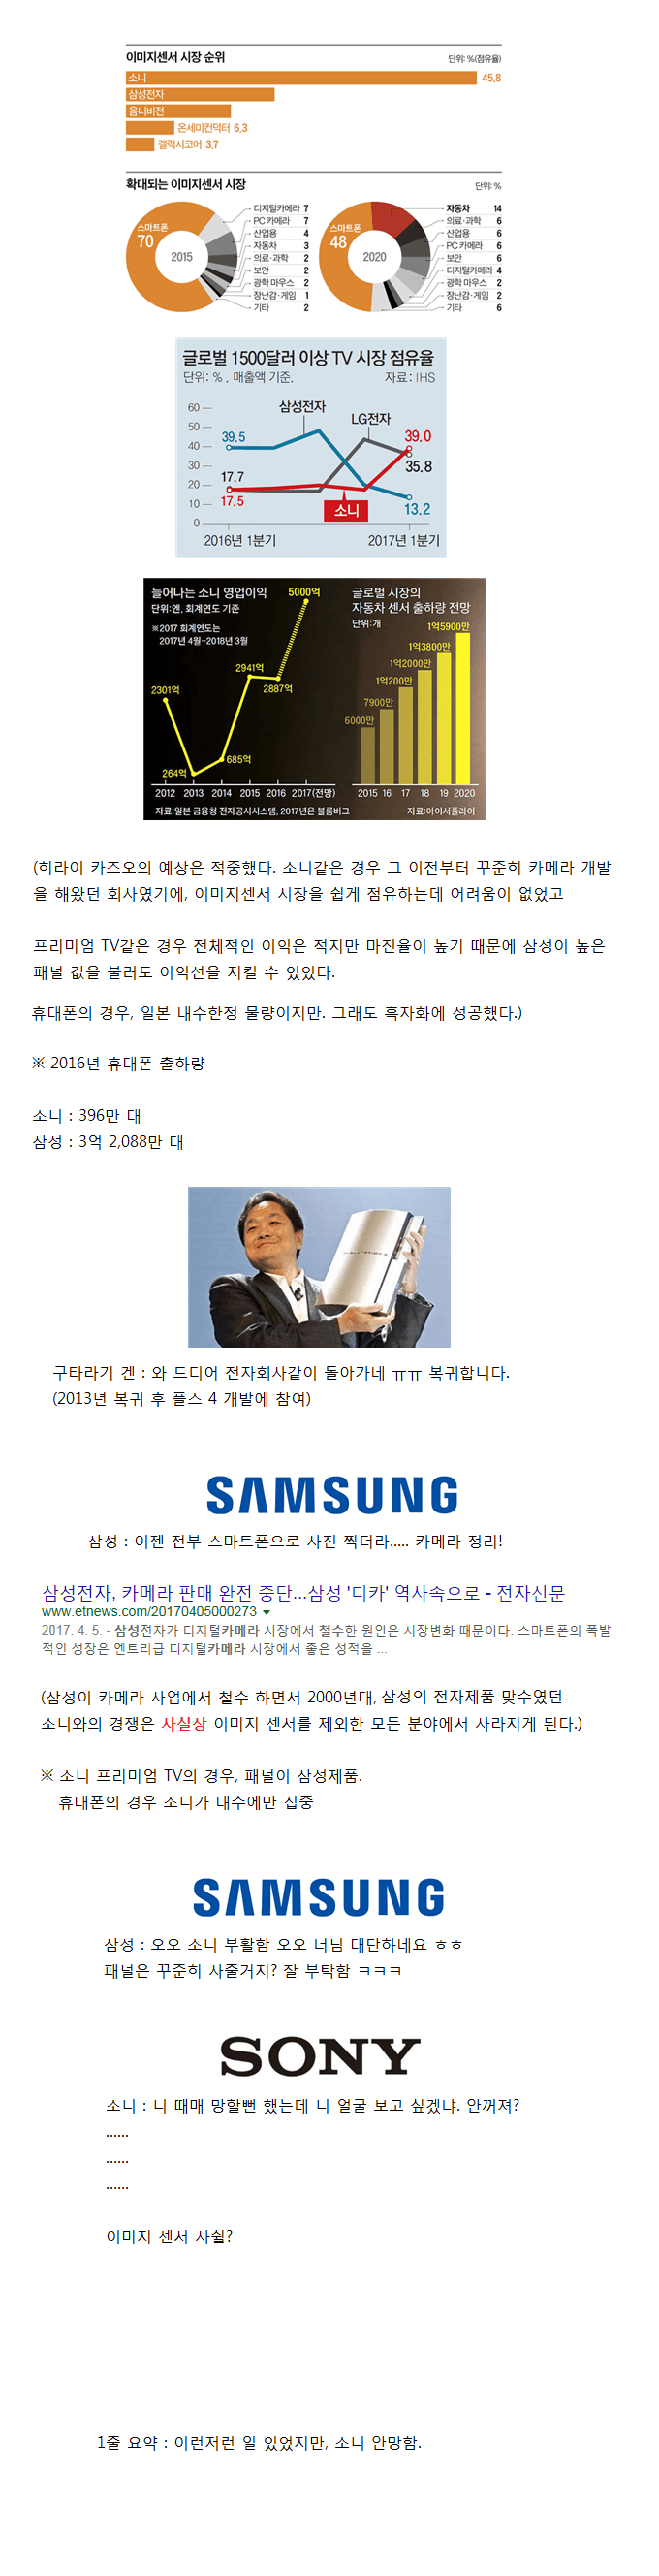 sony04.png